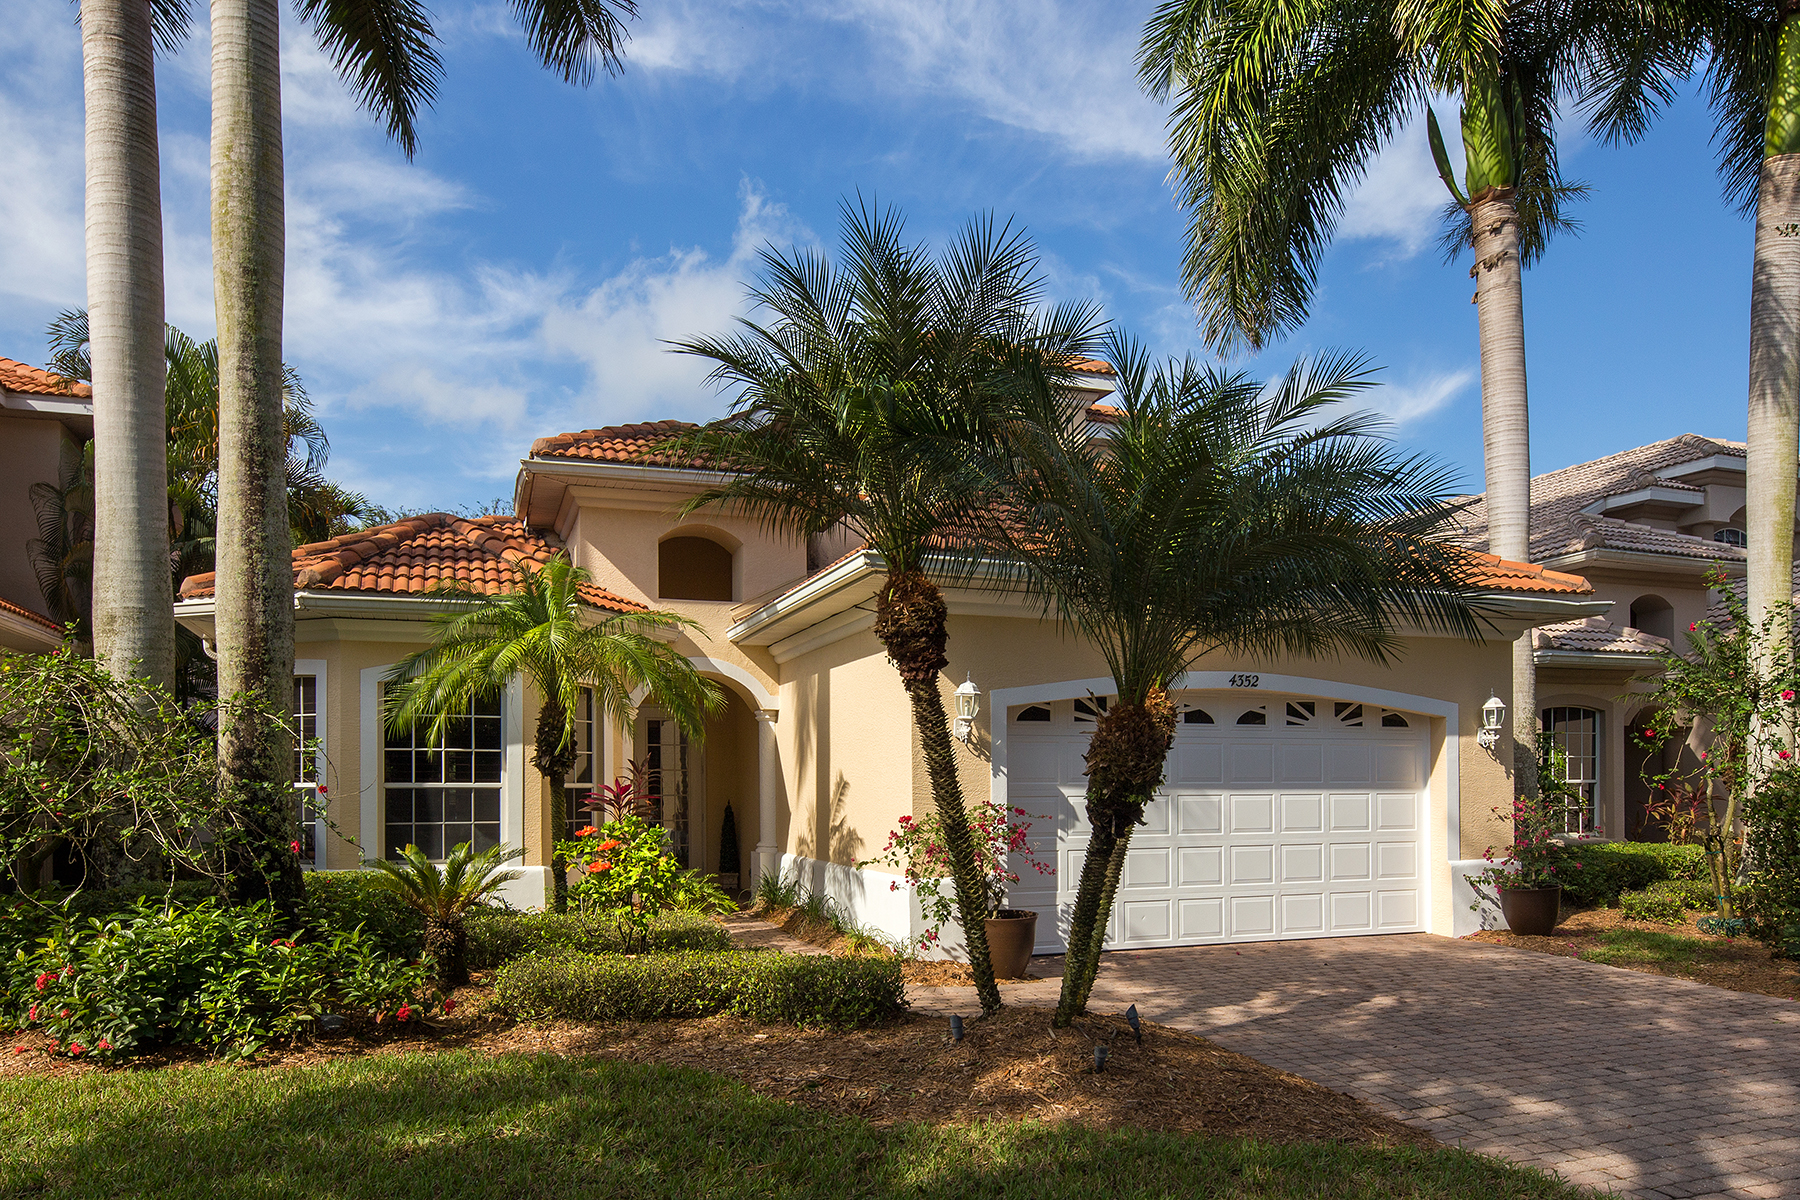 Single Family Home for Sale at 4352 Kensington High St , Naples, FL 34105 4352 Kensington High St Naples, Florida 34105 United States